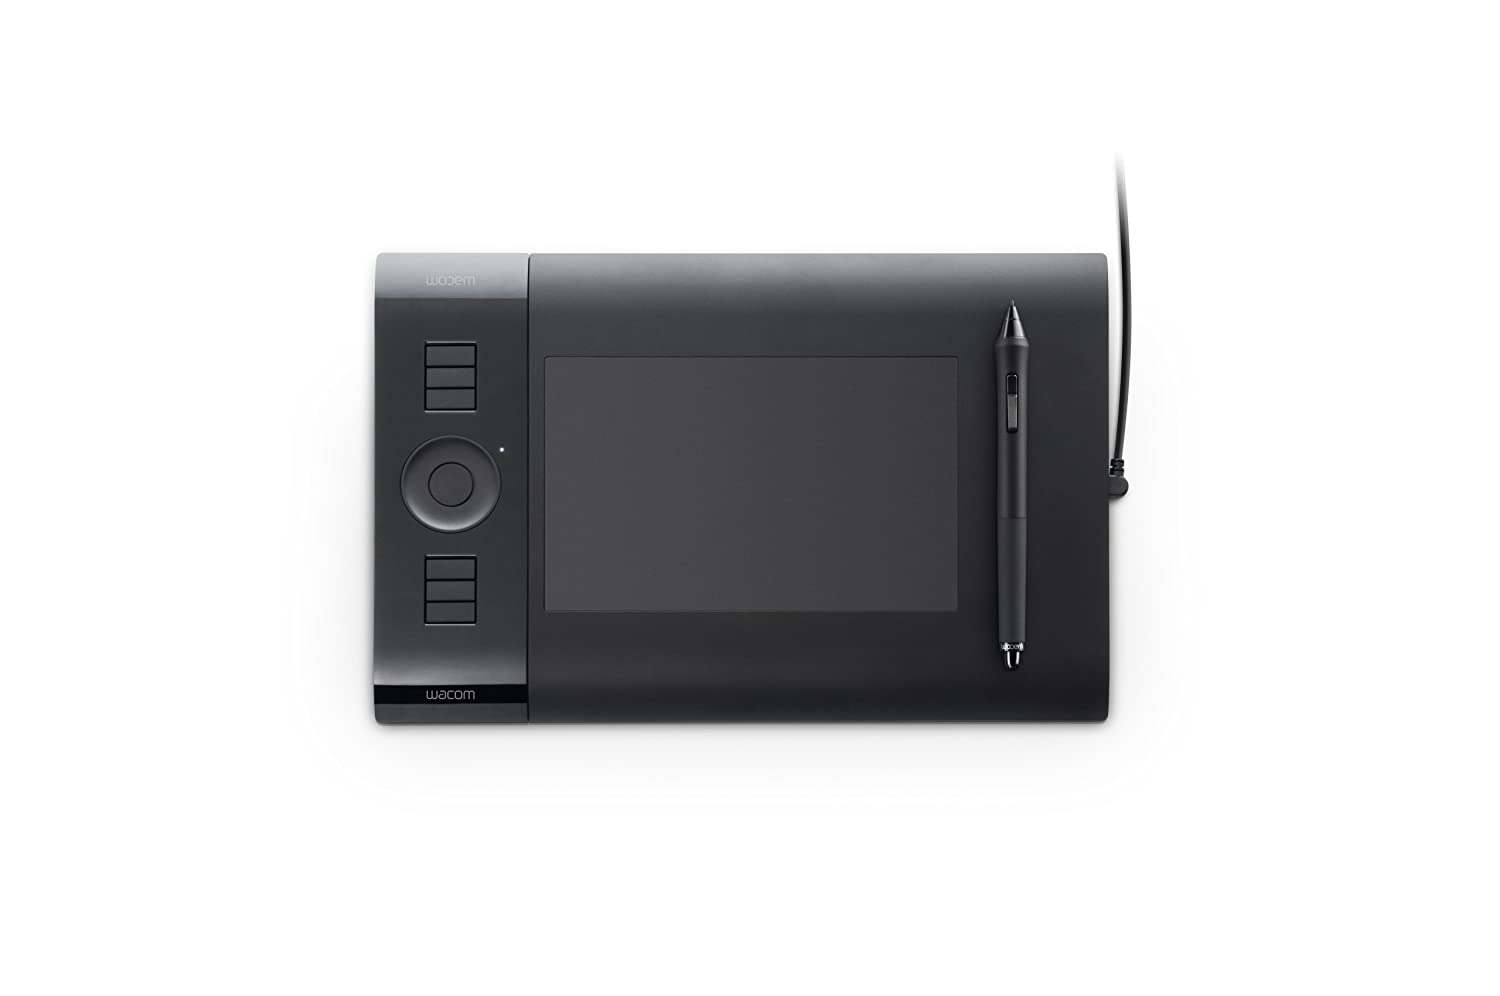 Wacom Intuos4 Small Pen Tablet